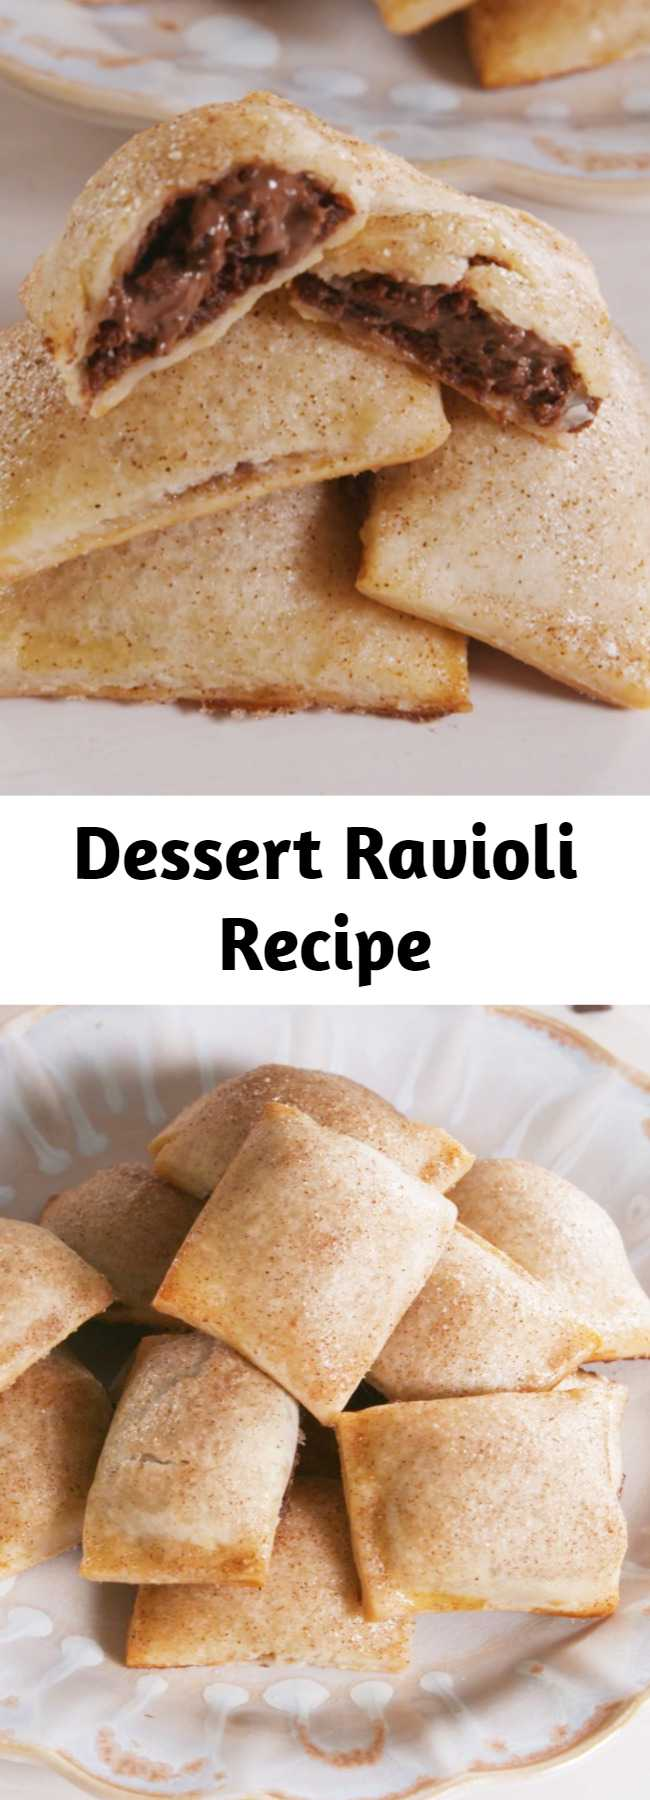 """Dessert Ravioli Recipe - How genius is this method?! You can fill these """"ravioli"""" with all sorts of things, from fruit fillings to peanut butter and chocolate. We chose Nutella because we're obsessed with it. This Dessert Ravioli is the BEST thing to do with Nutella. #icecubetrayhacks #piedough #creamcheese #nutella #nutelladesserts #minidesserts"""